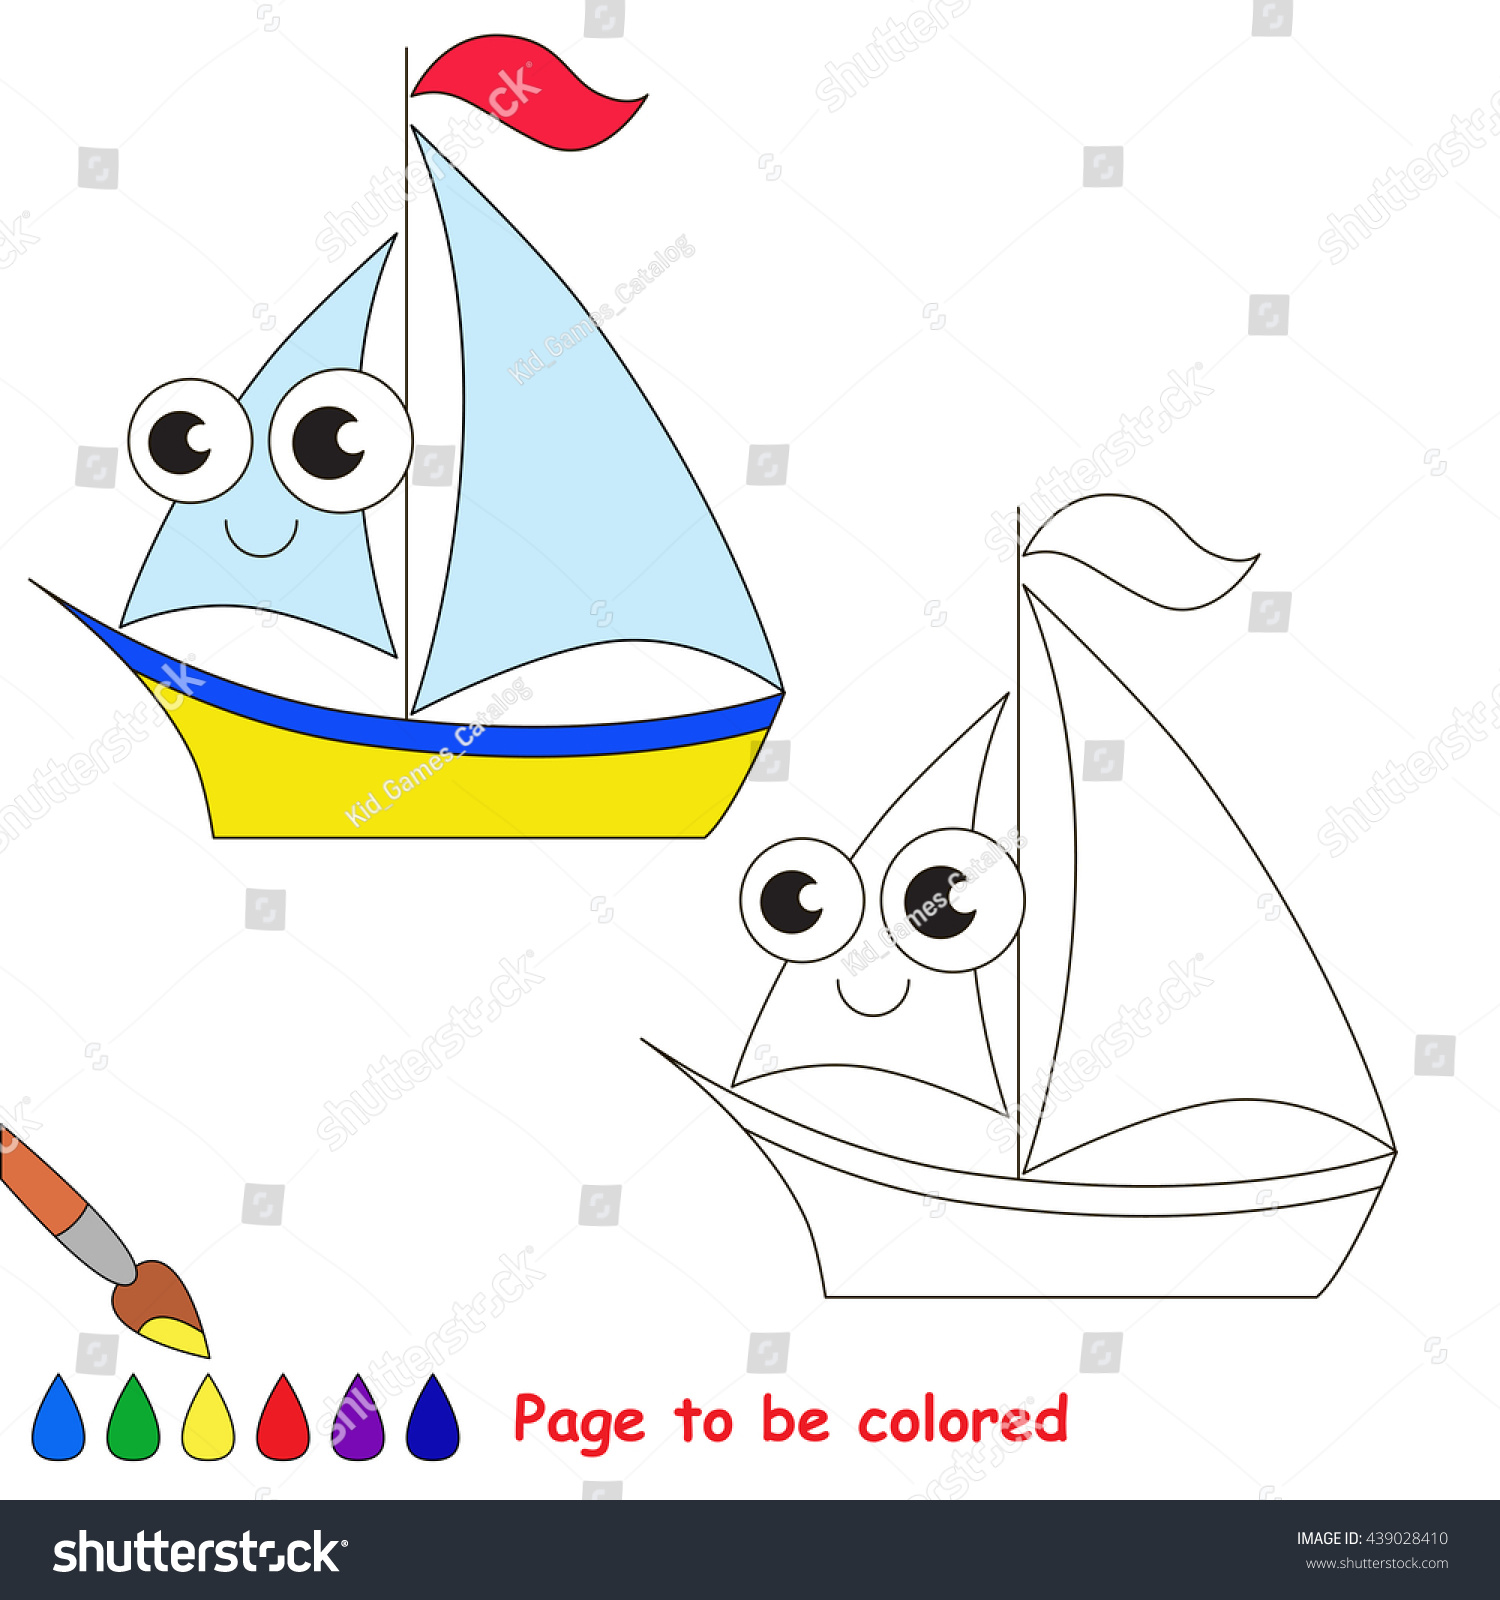 Yellow Boat Be Colored Coloring Book Stock Photo (Photo, Vector ...